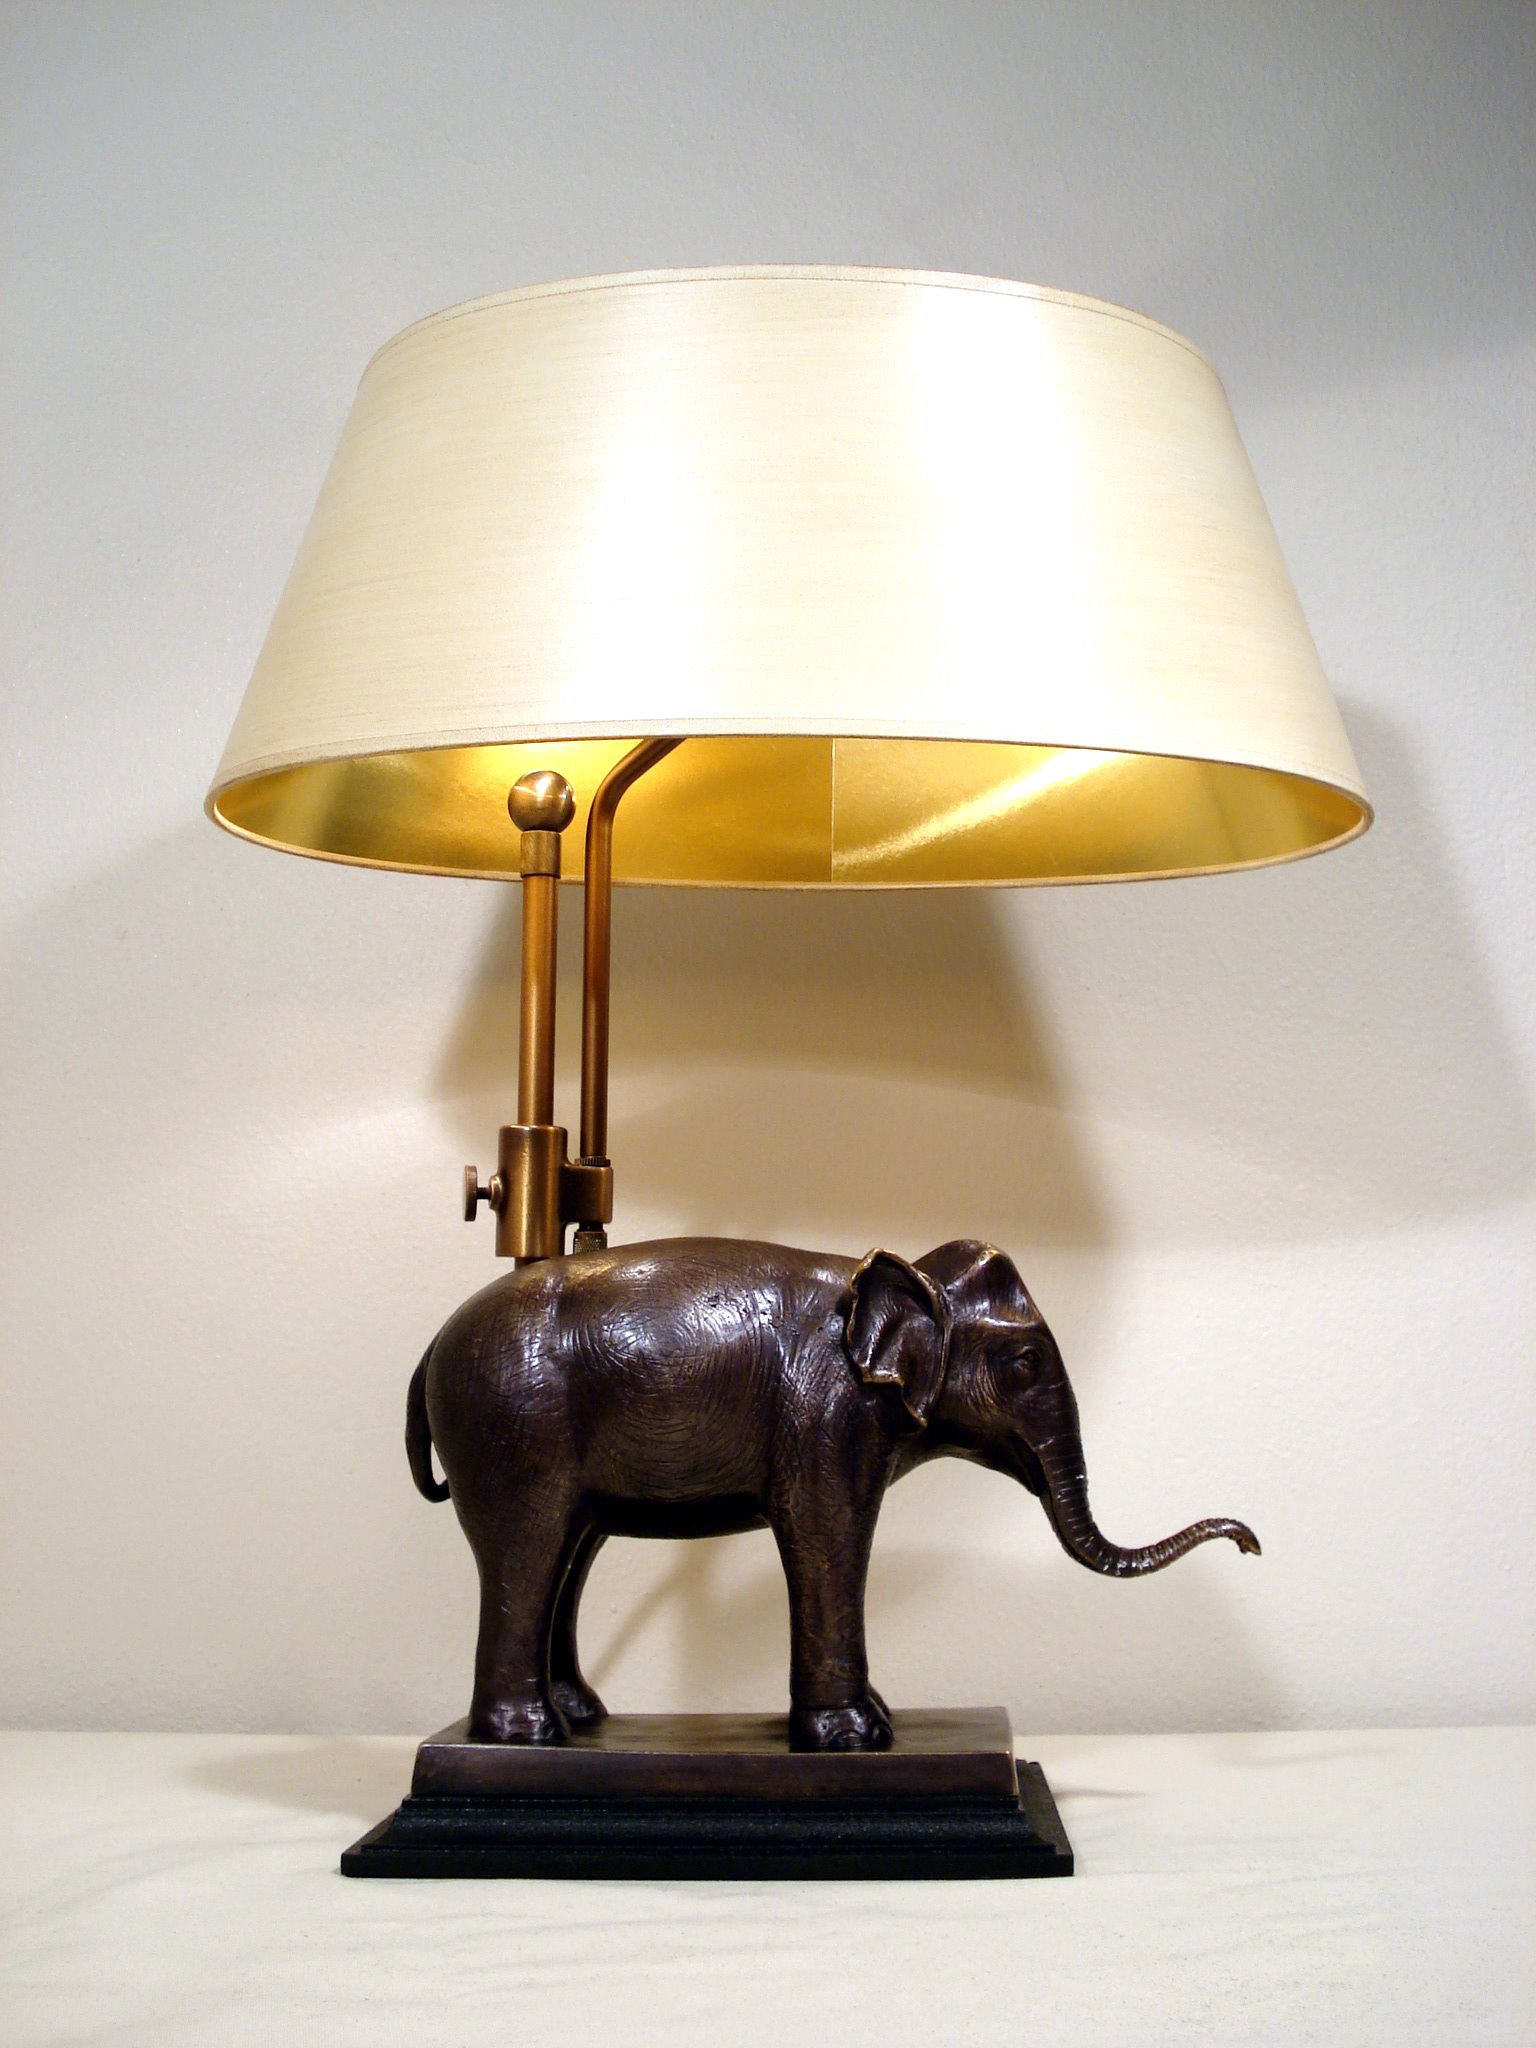 SI-204 - Tischleuchte, Lampenfuss Elefant in Bronze  auf Sockel, Signature Collection